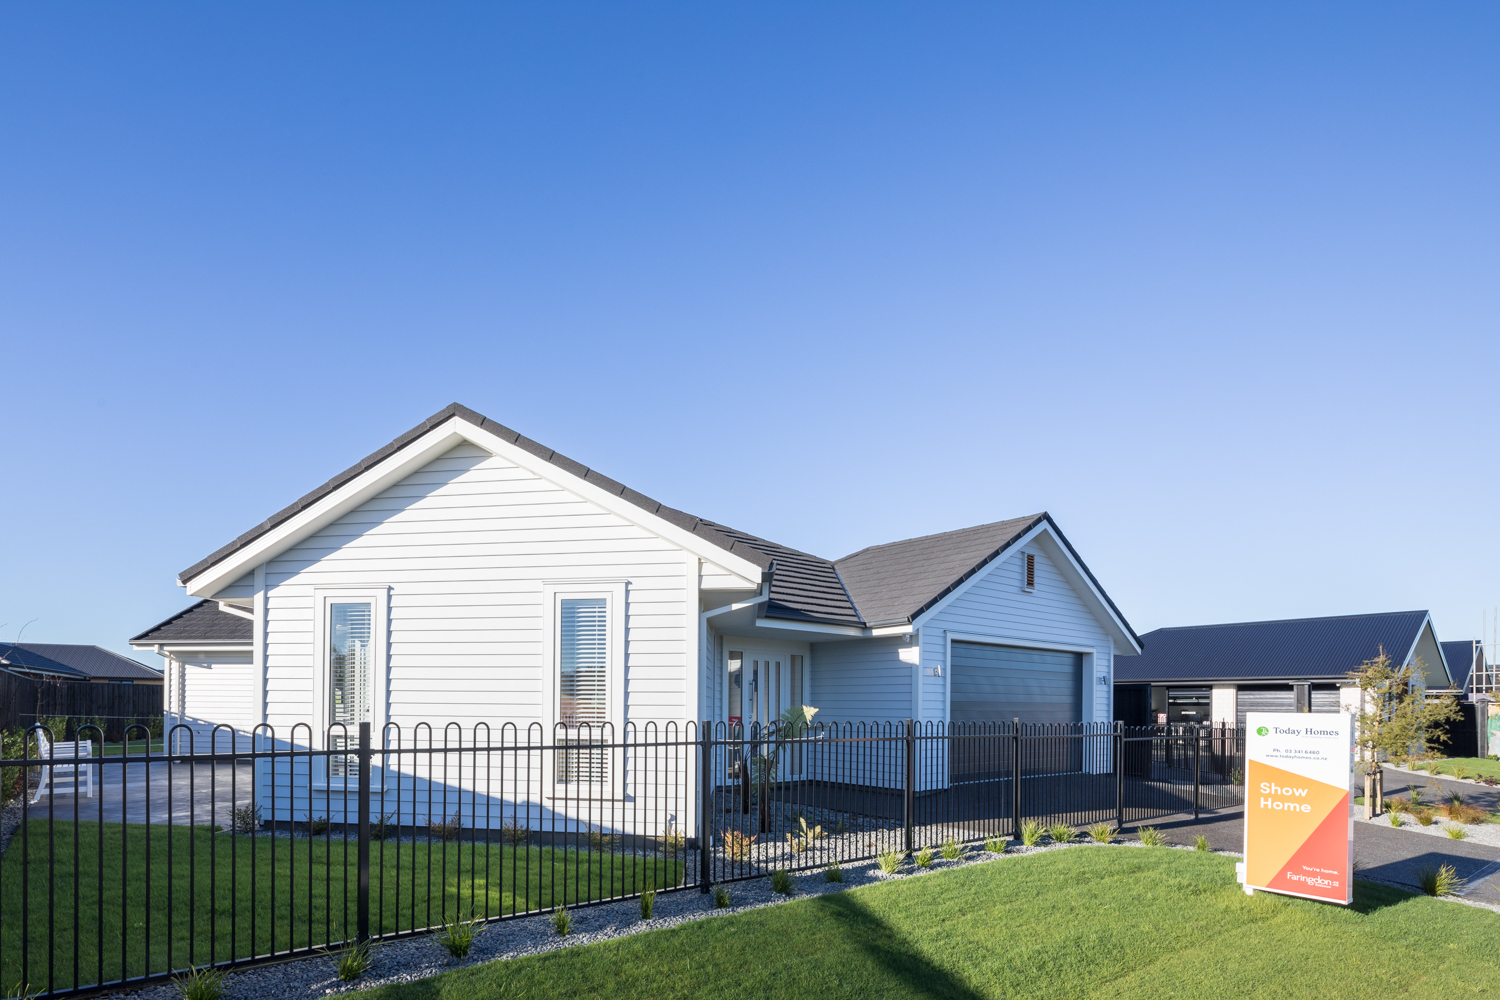 TH_Rolleston_Showhomes_033.jpg